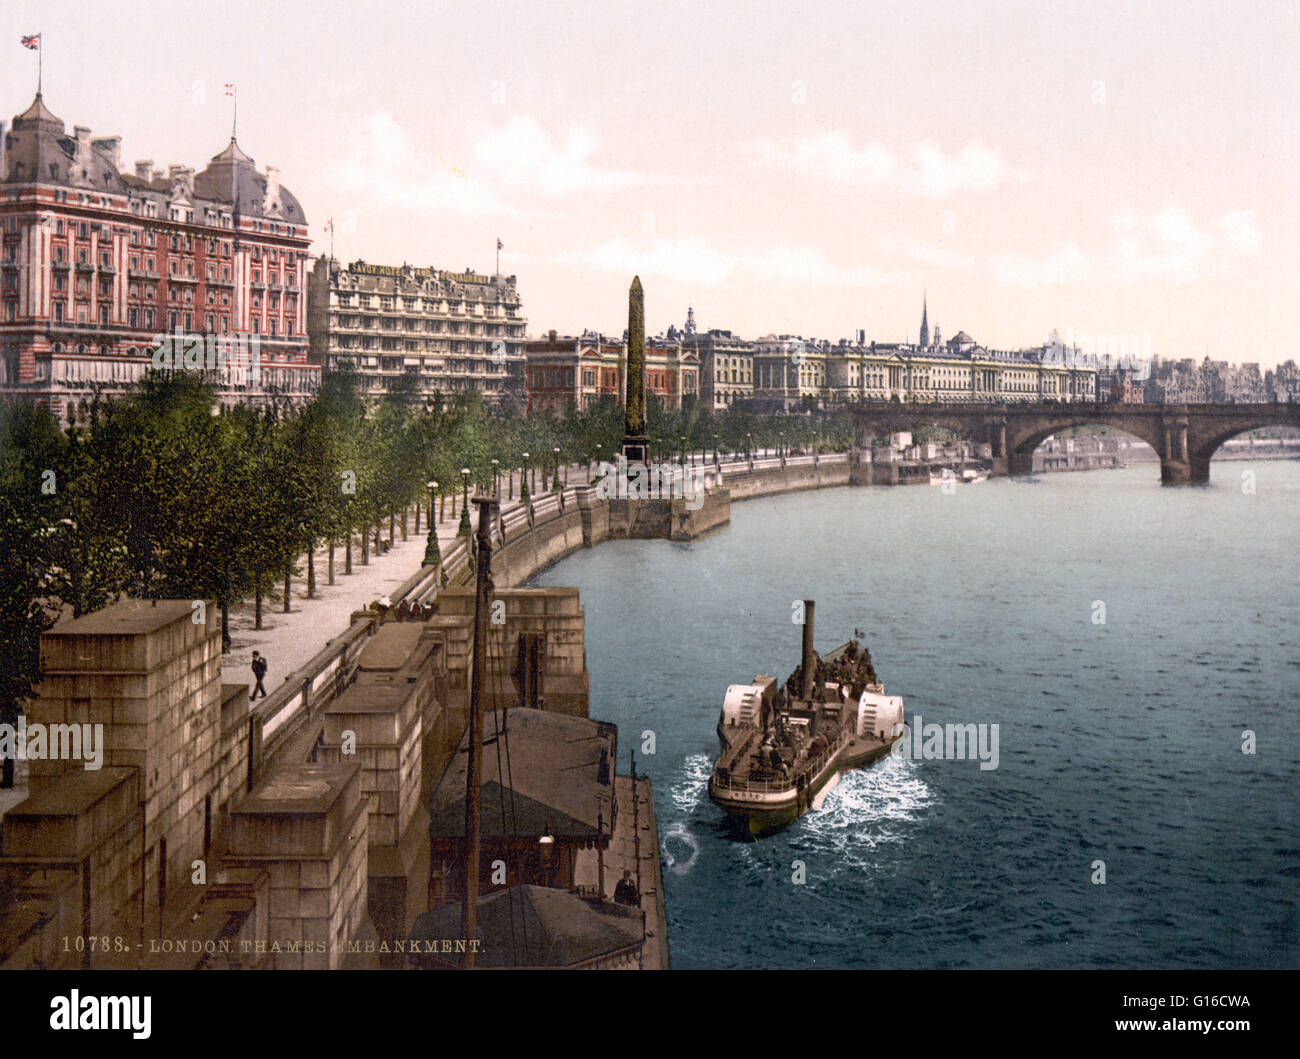 Thames embankment, London, England. The Thames Embankment was a major feat of 19th century civil engineering designed - Stock Image